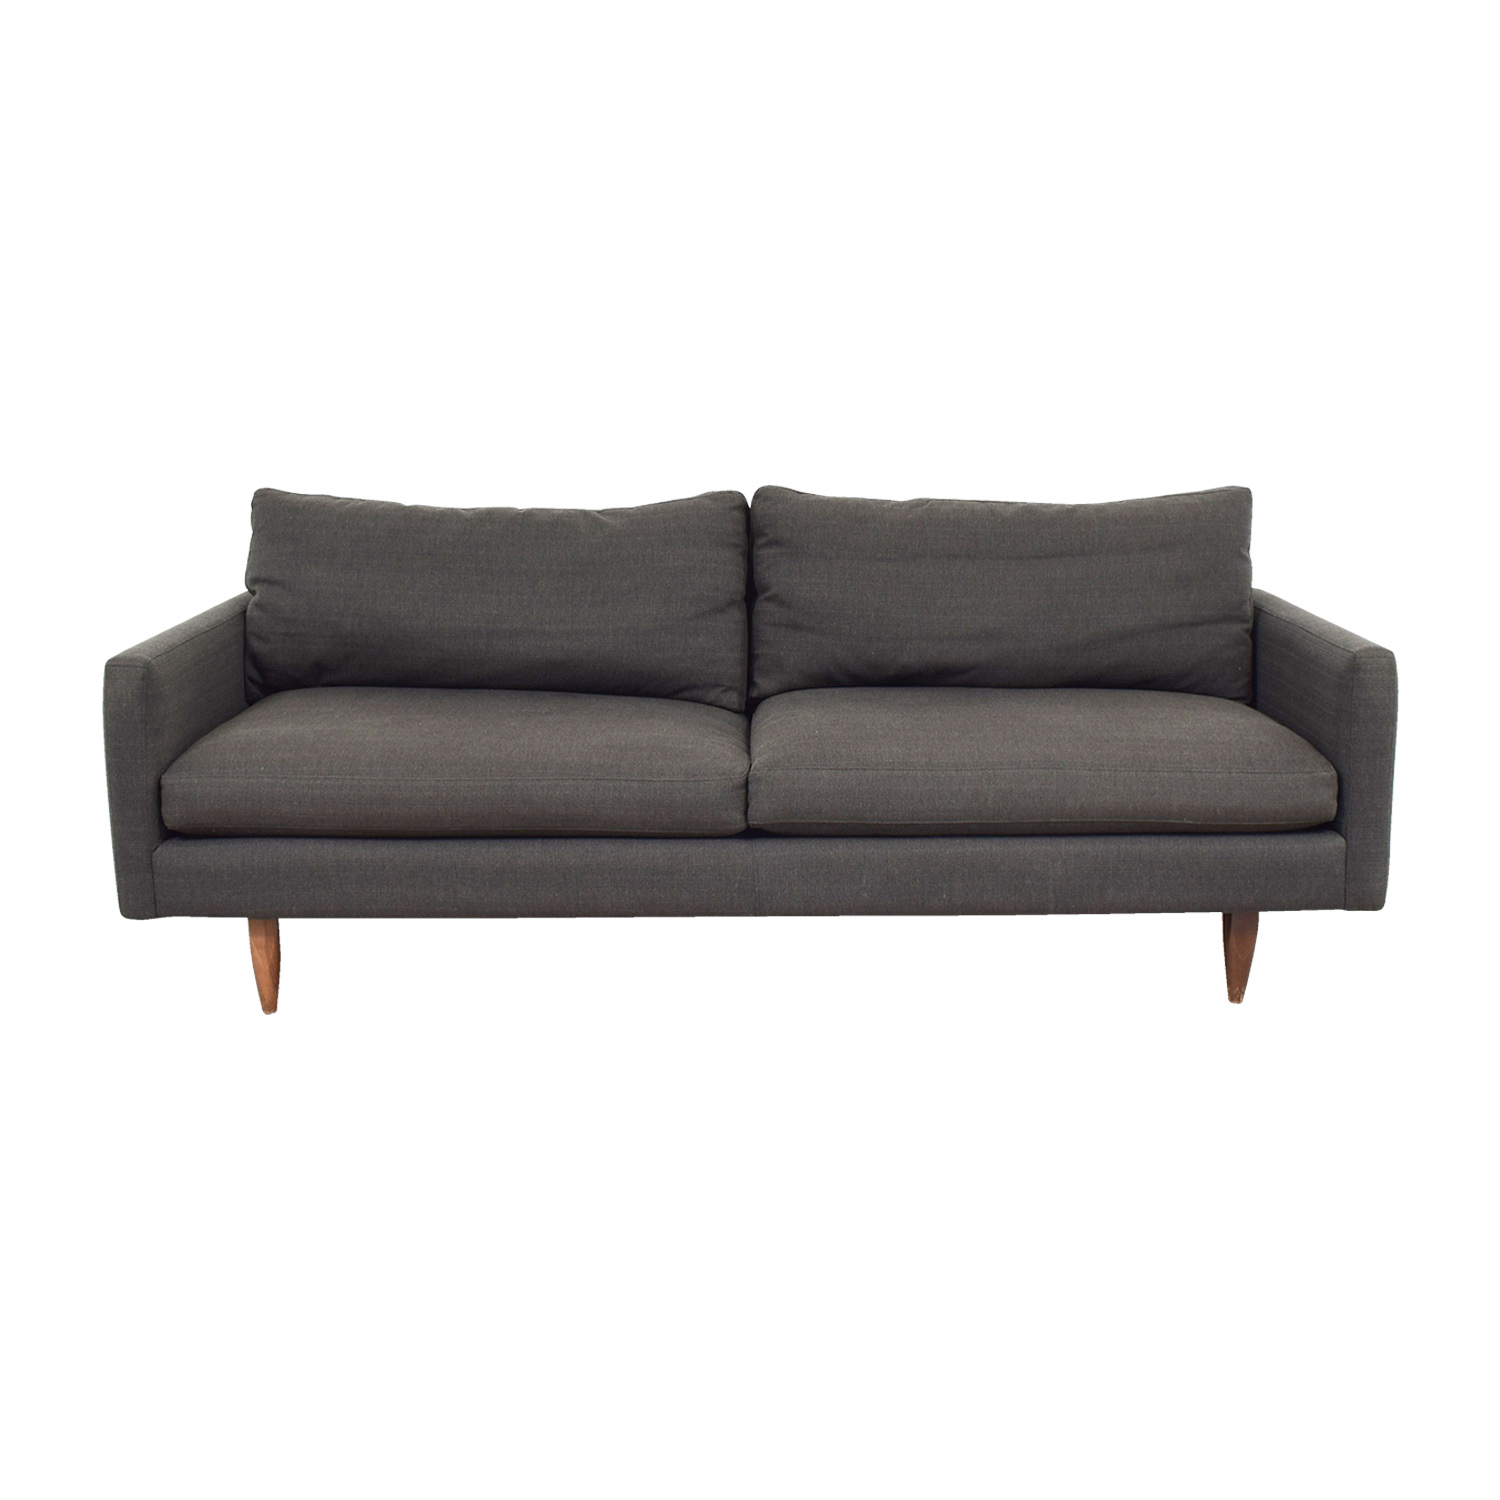 Room and Board Room & Board Jasper Grey Two-Cushion Sofa coupon